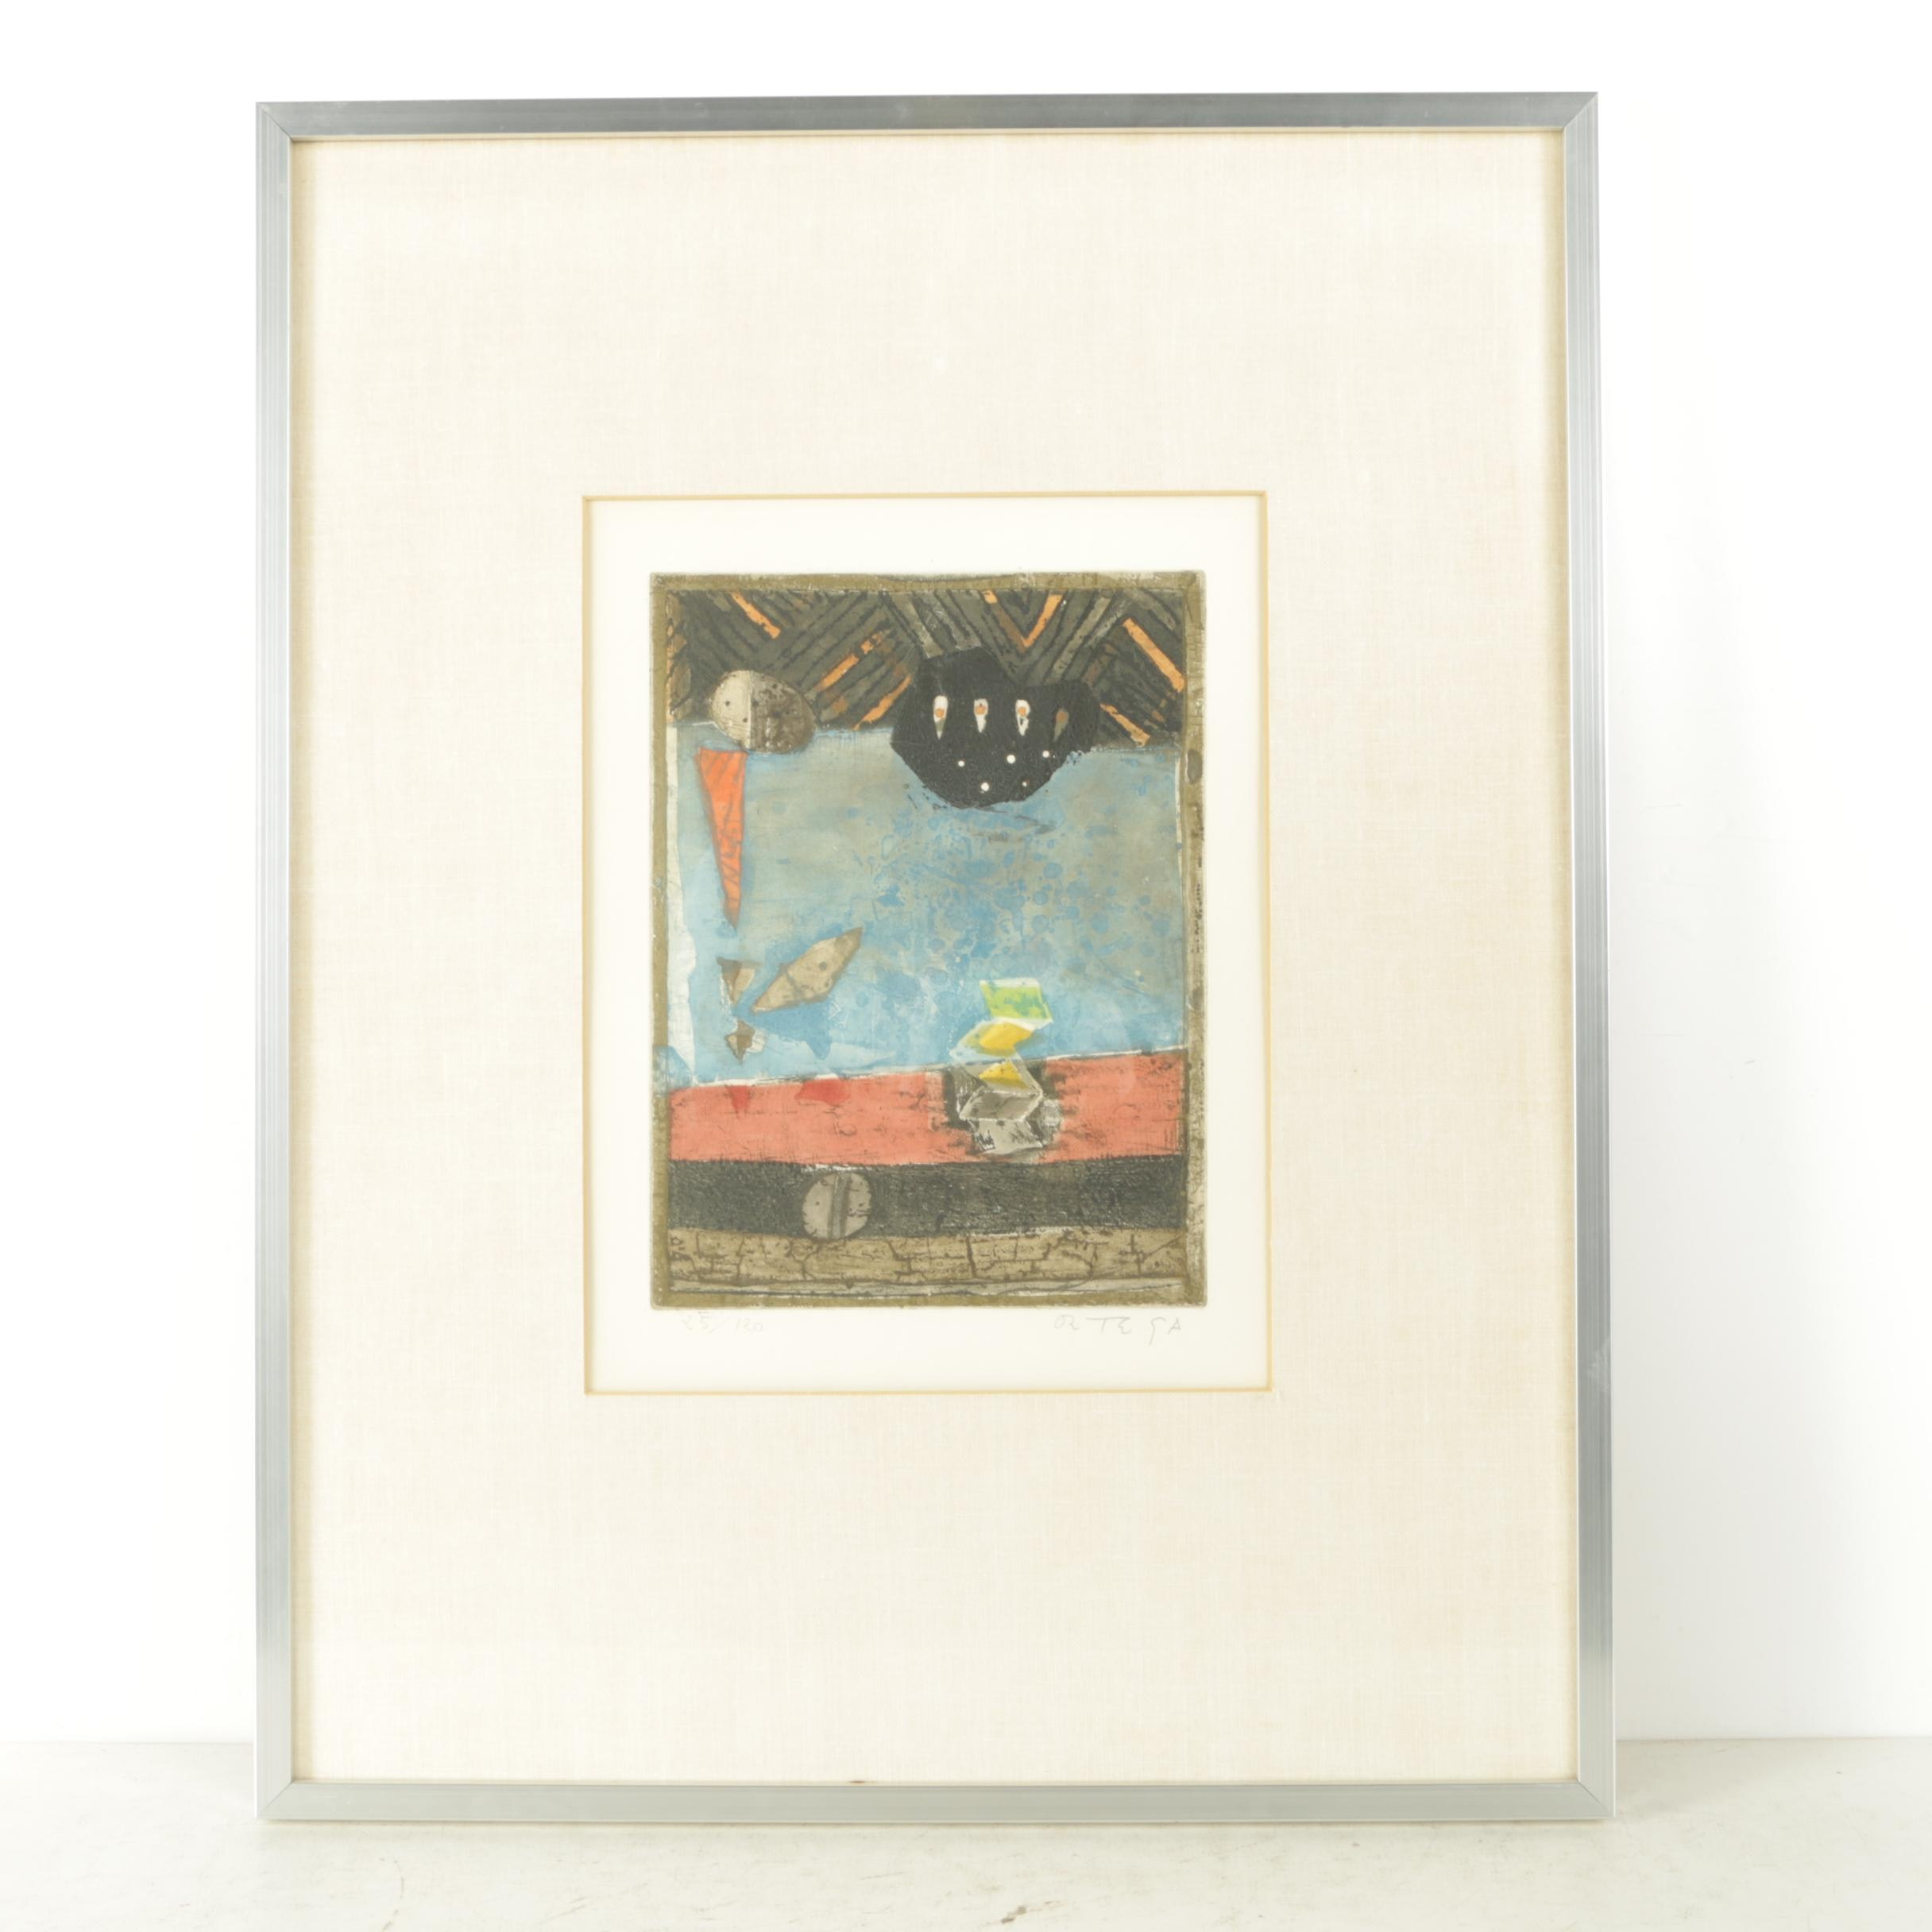 Ortega Limited Edition Etching on Paper